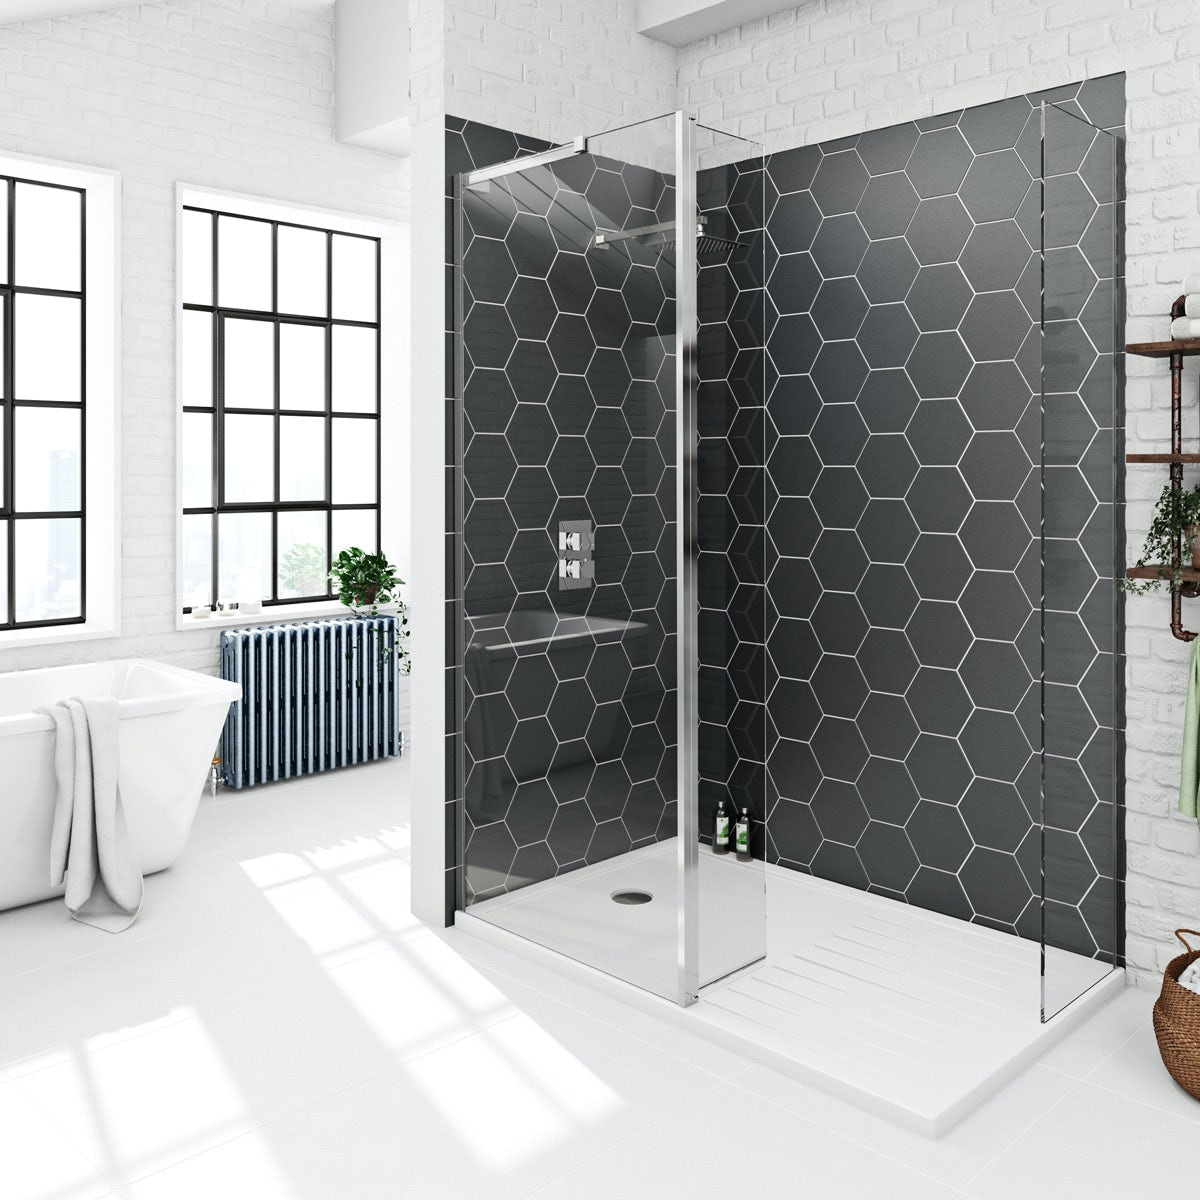 Victoria Plumb Showers >> Mode 8mm spacious walk in pack with stone tray 1400 x 900 | VictoriaPlum.com